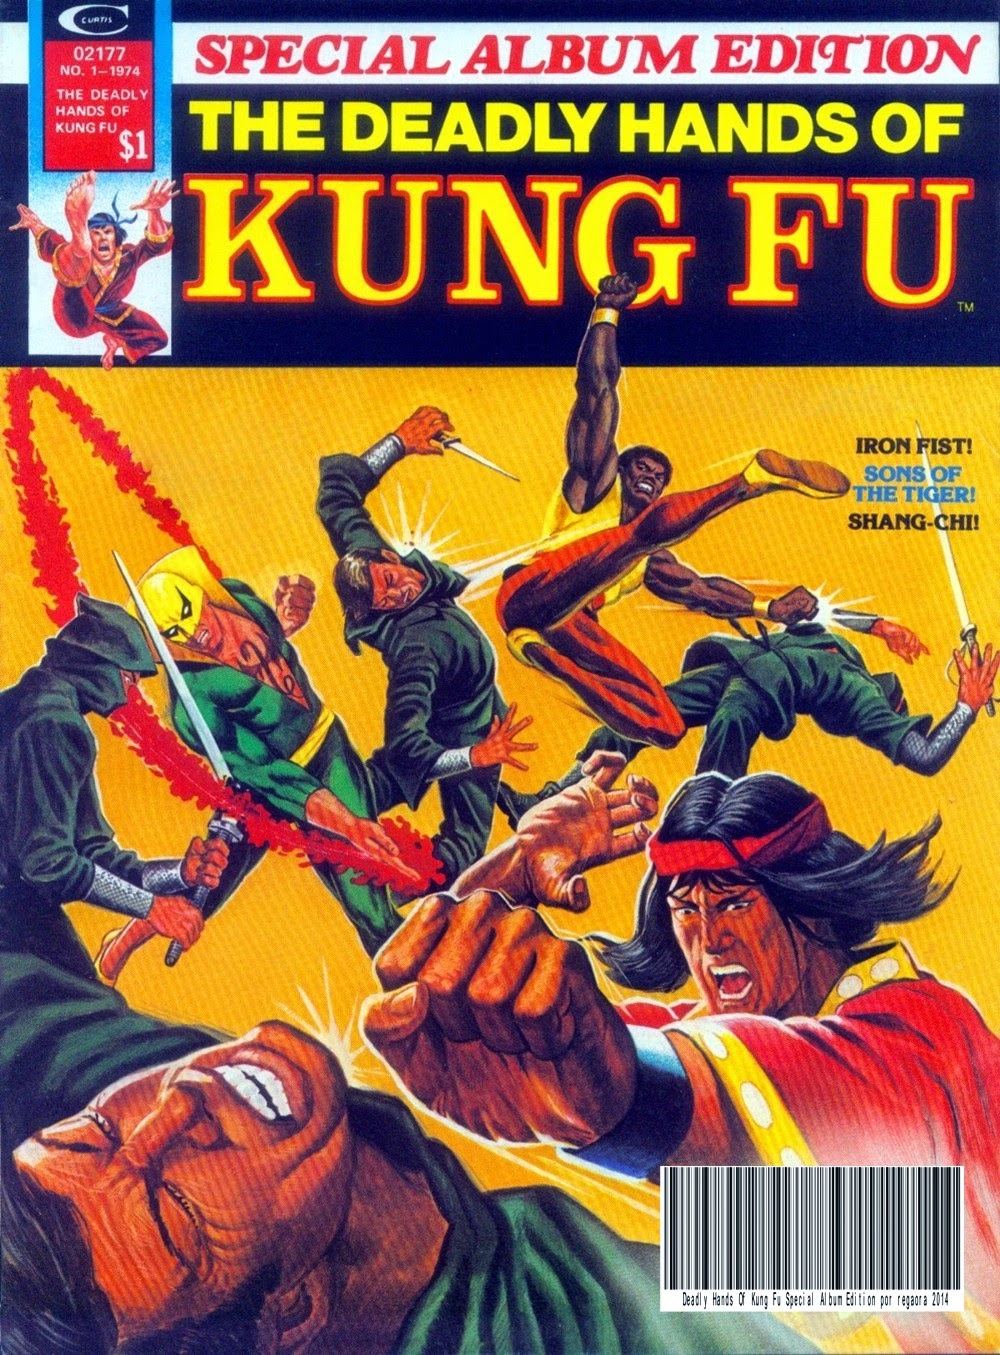 Portada de The Deadly Hands of Kung Fu Special Album Edition